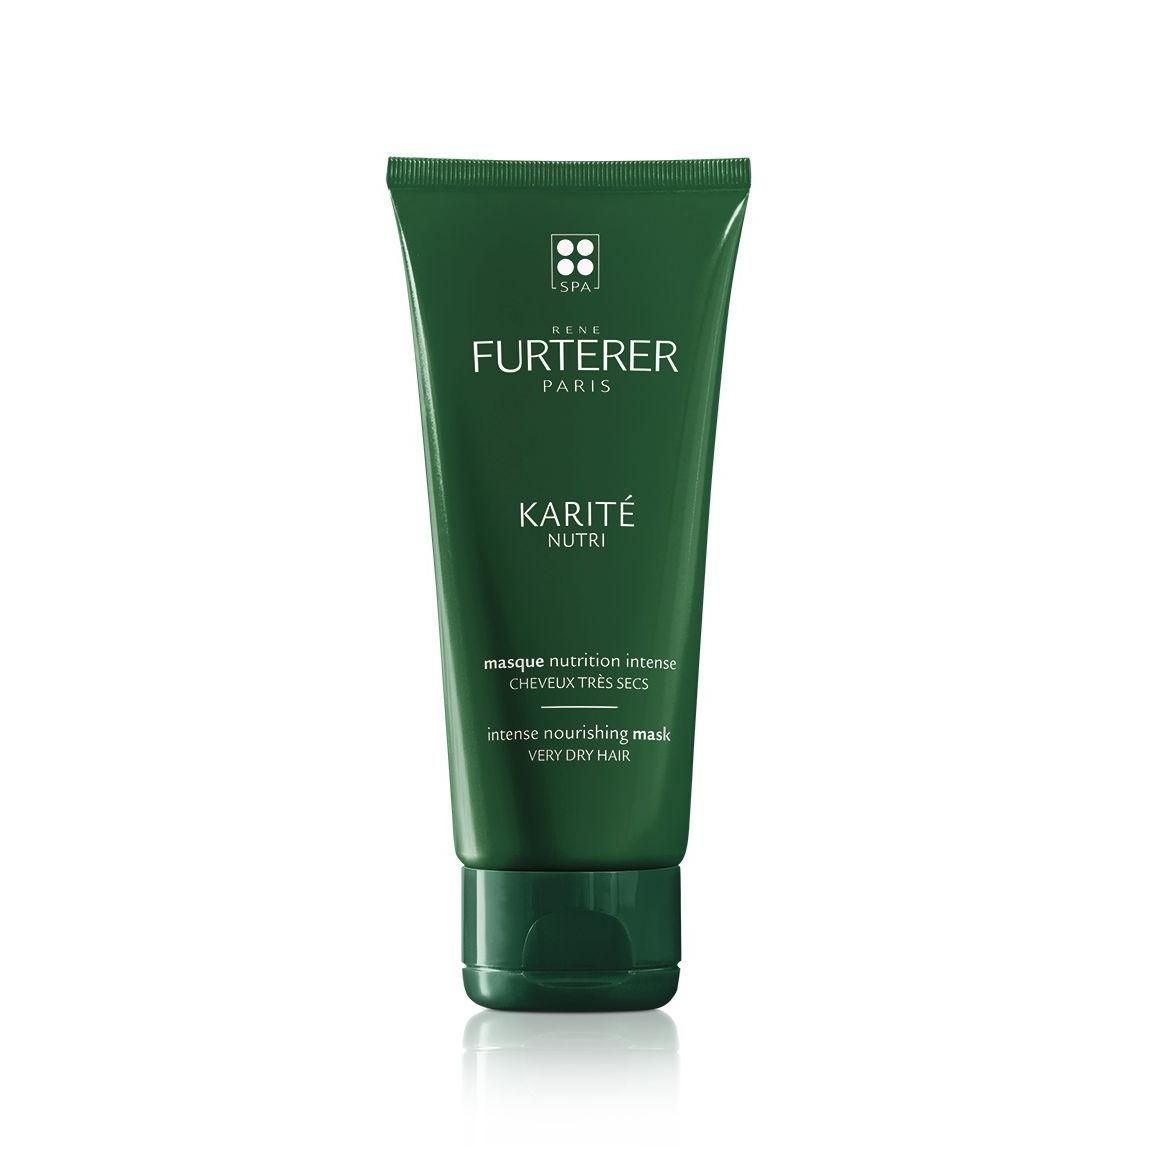 acheter ren furterer karit nutri intense masque masque pour les cheveux 100ml maintenant. Black Bedroom Furniture Sets. Home Design Ideas